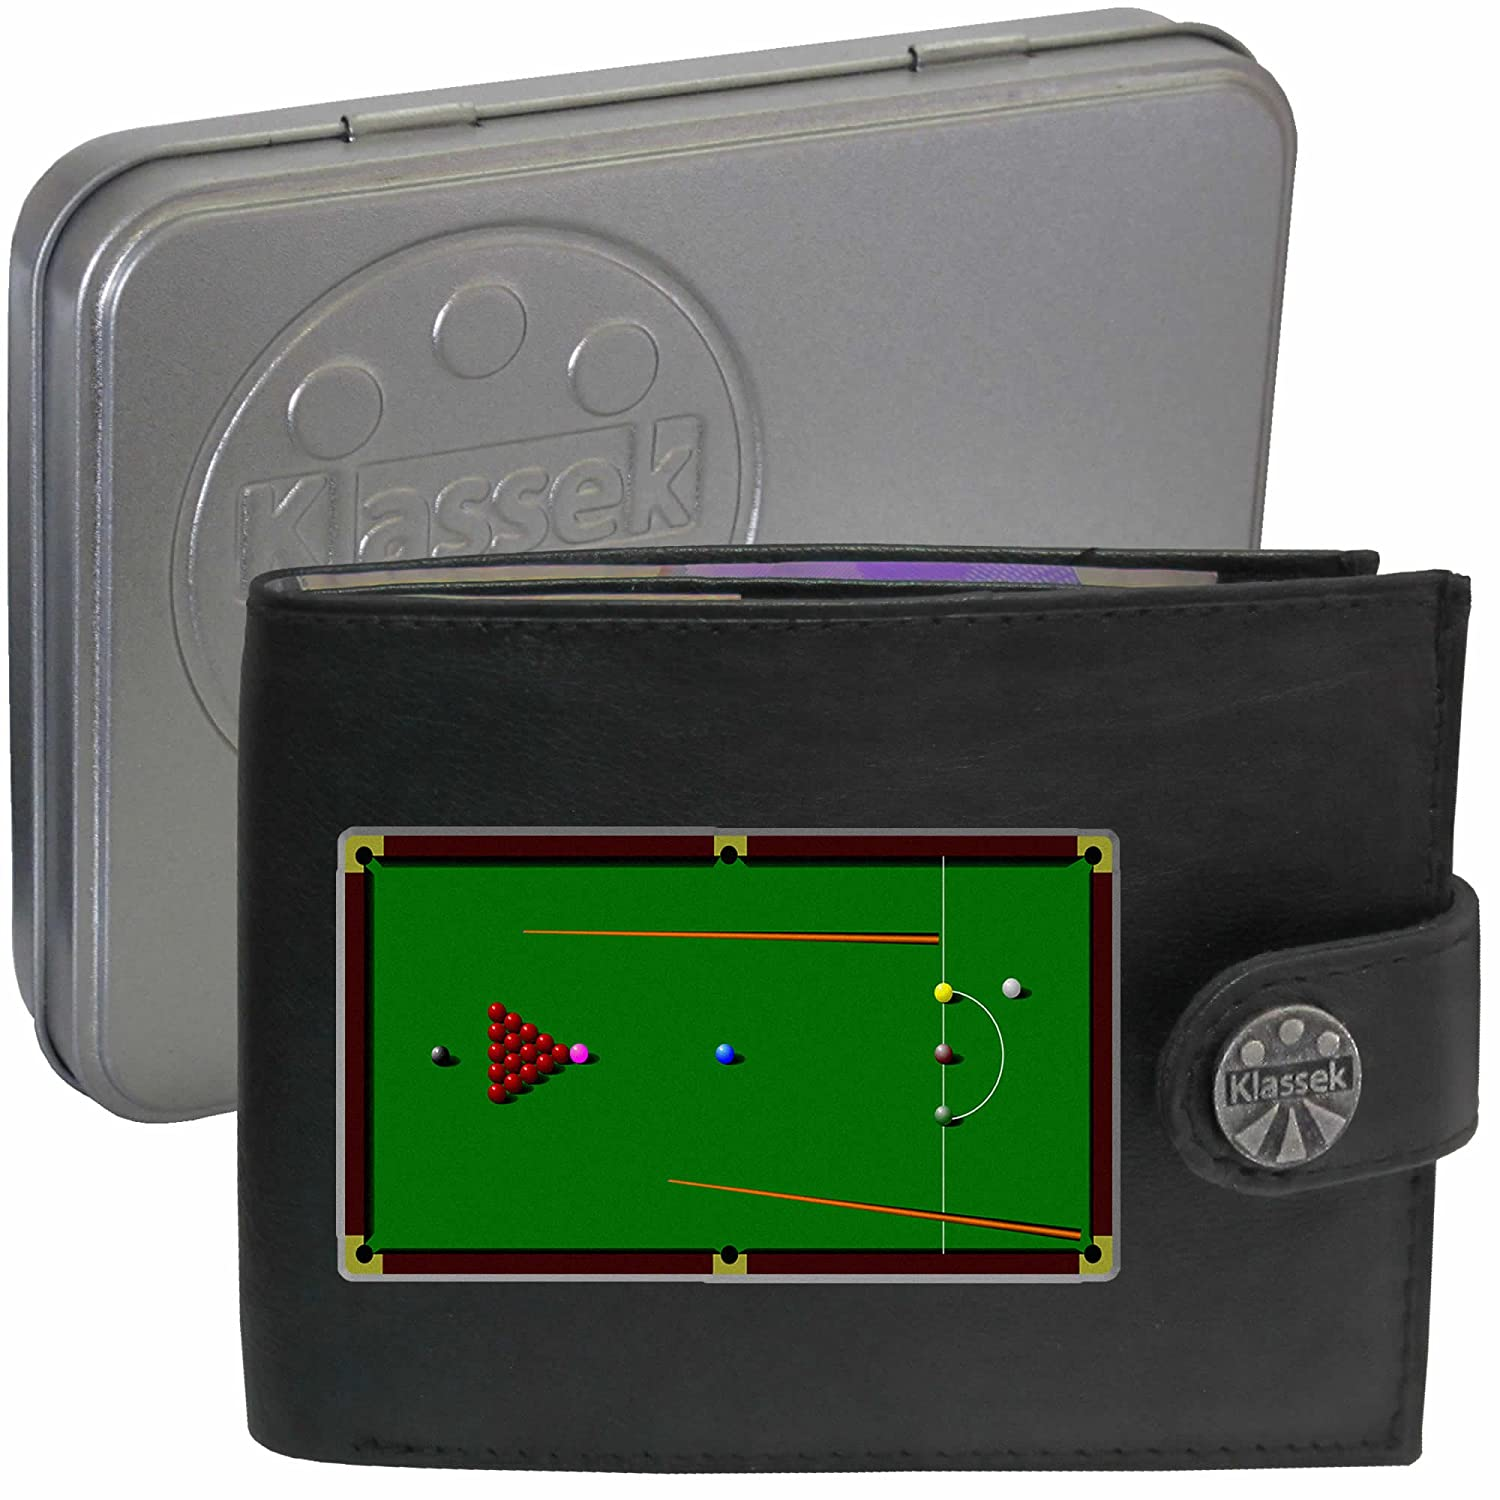 Snooker table with balls and Cue Mens Black Leather Wallet Novelty Sport pool funny Present gift with Metal Box